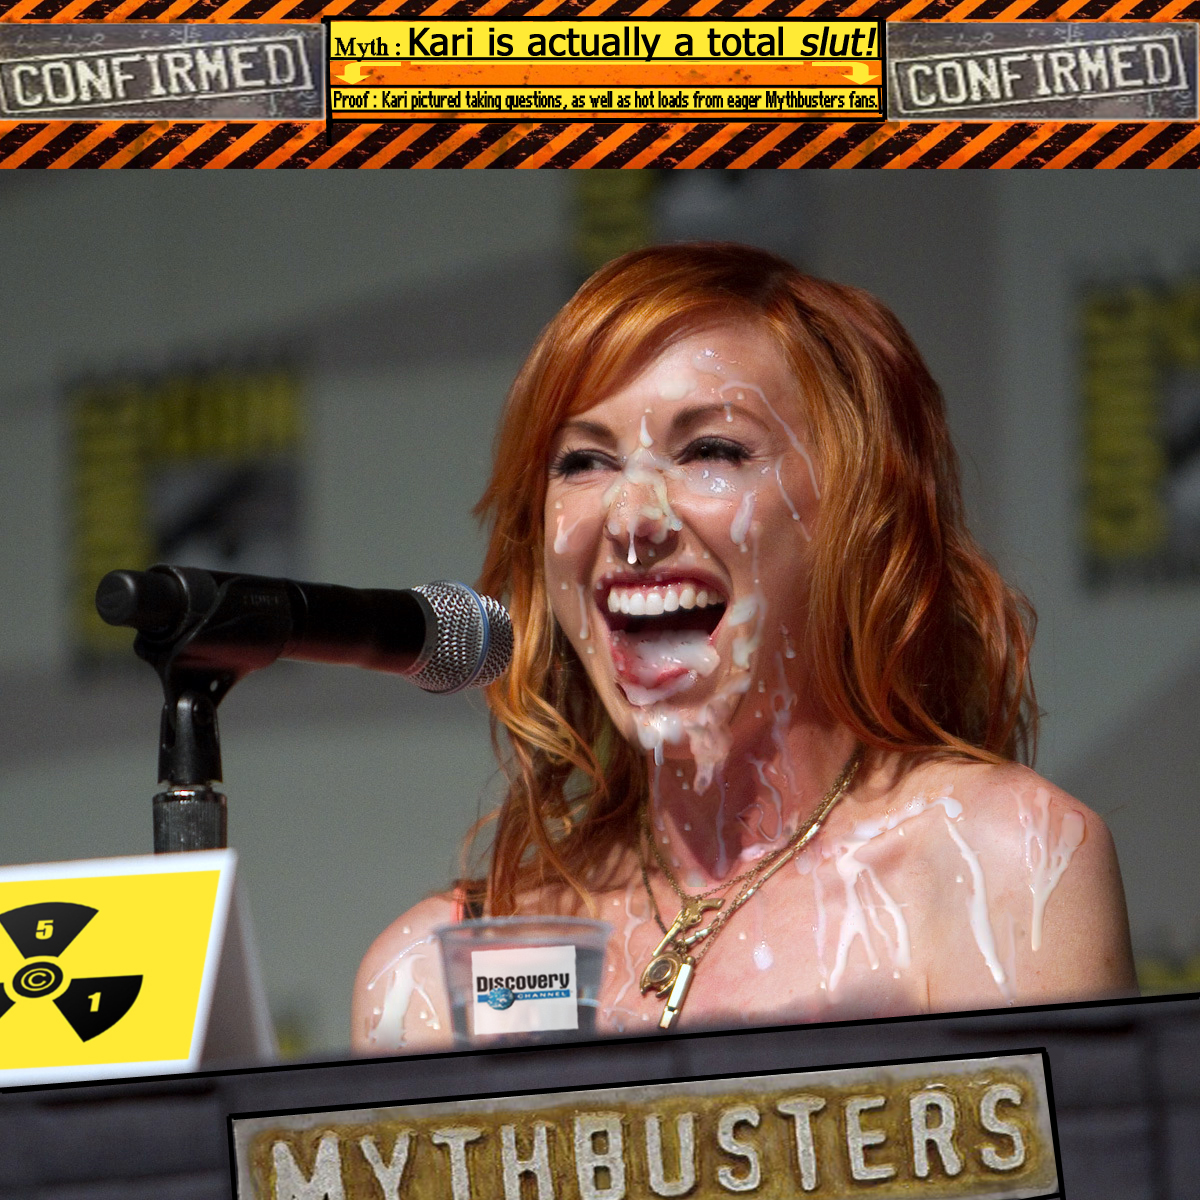 Karey byron on mythbusters nudee, hottest girl blow job